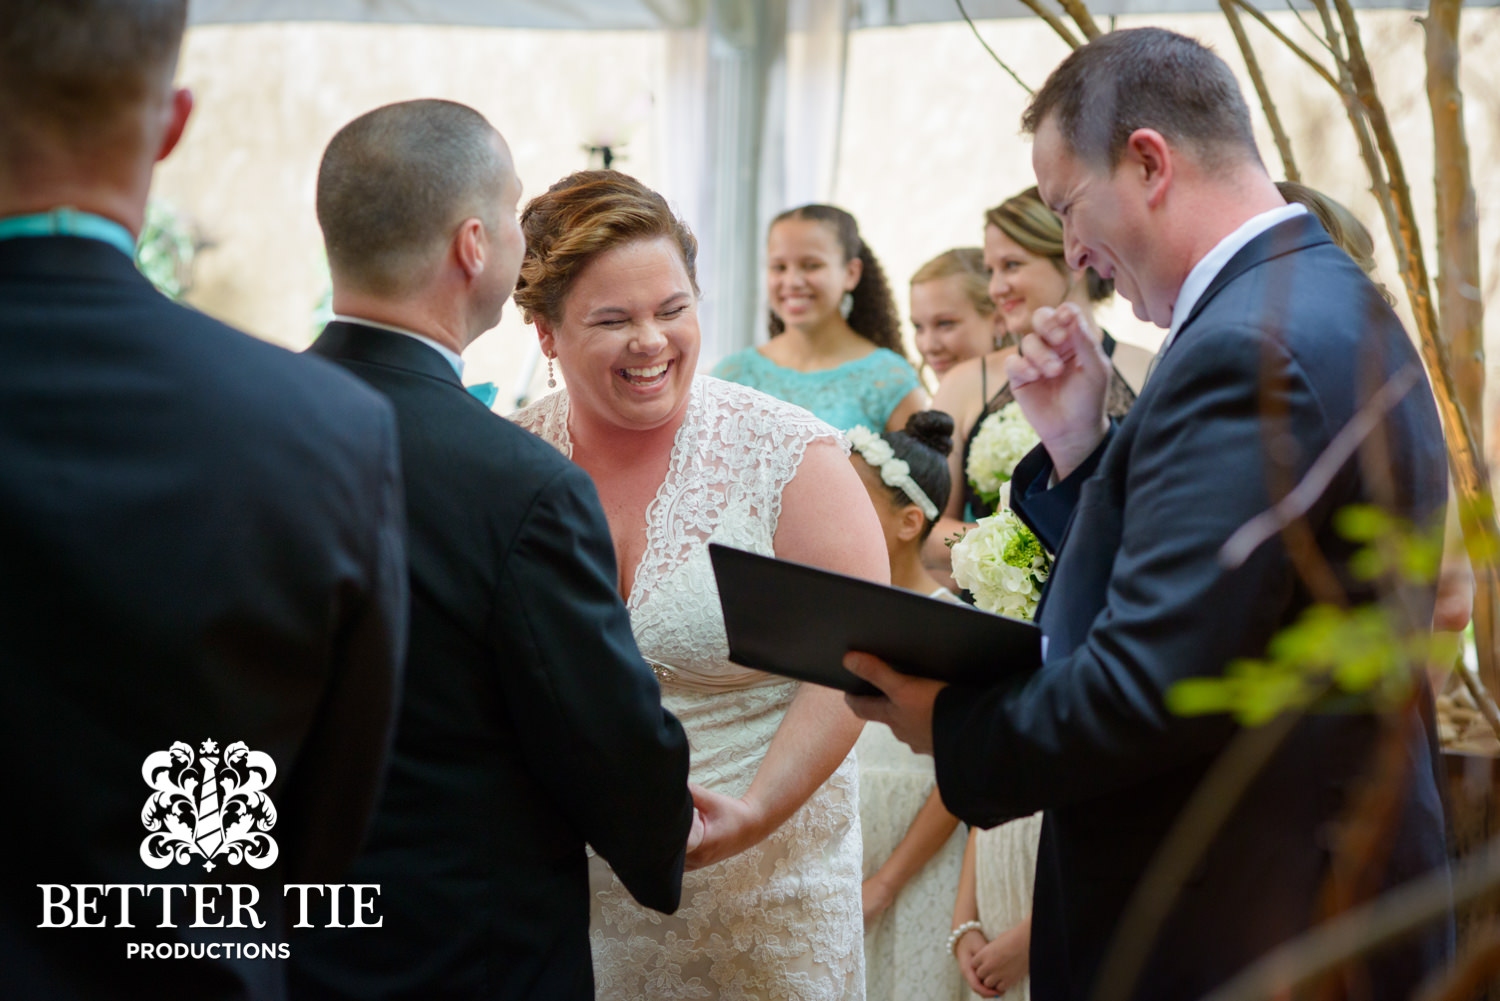 Tori + Barry | Twigs Tempietto Wedding | Better Tie Productions-182.jpg